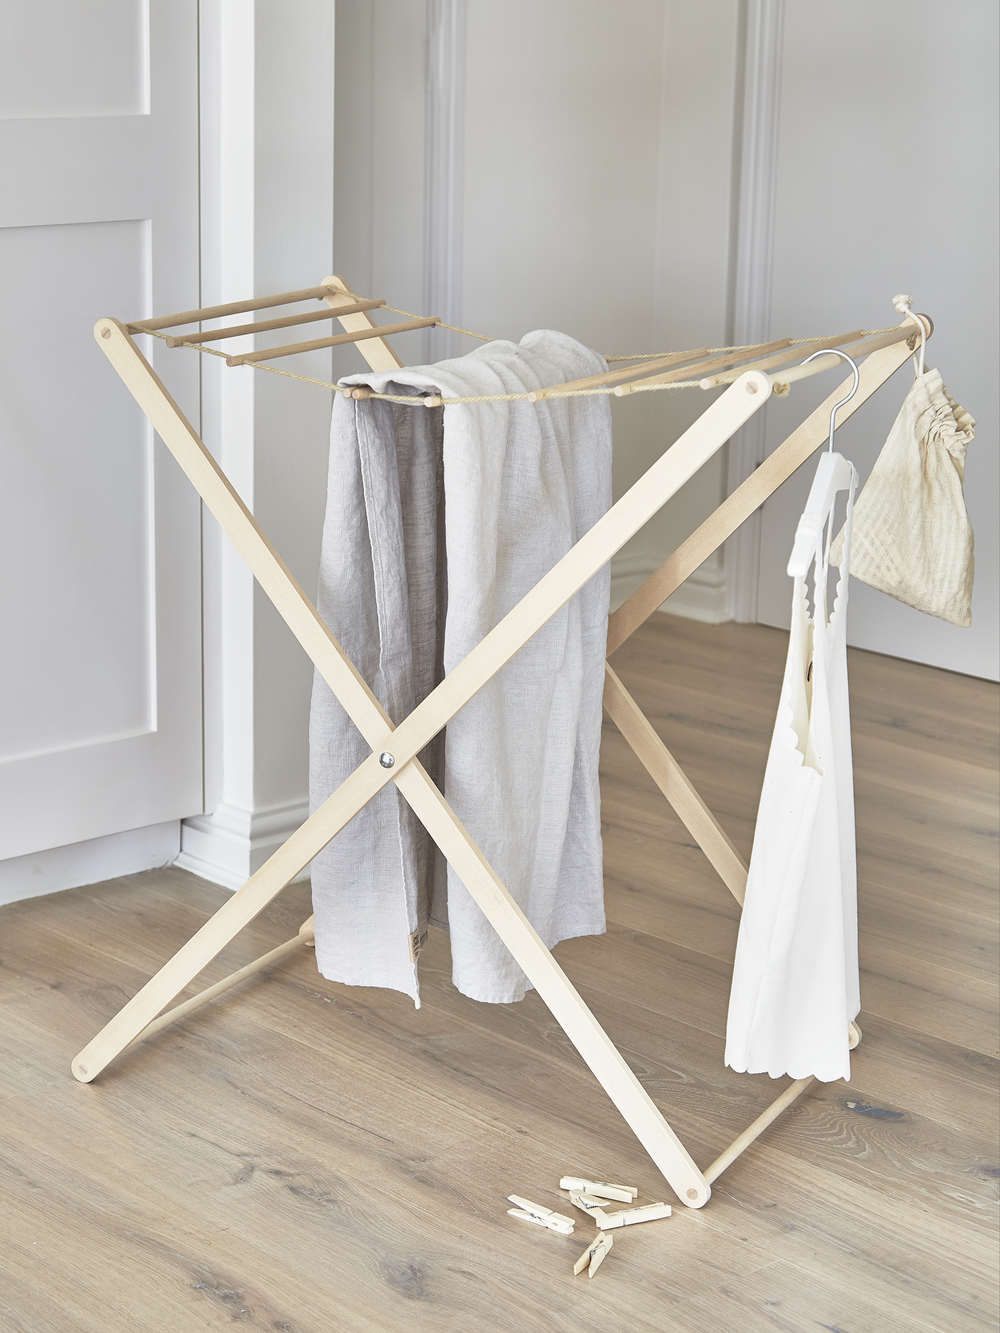 Birch Wood Drying Rack Wooden Clothes Drying Rack